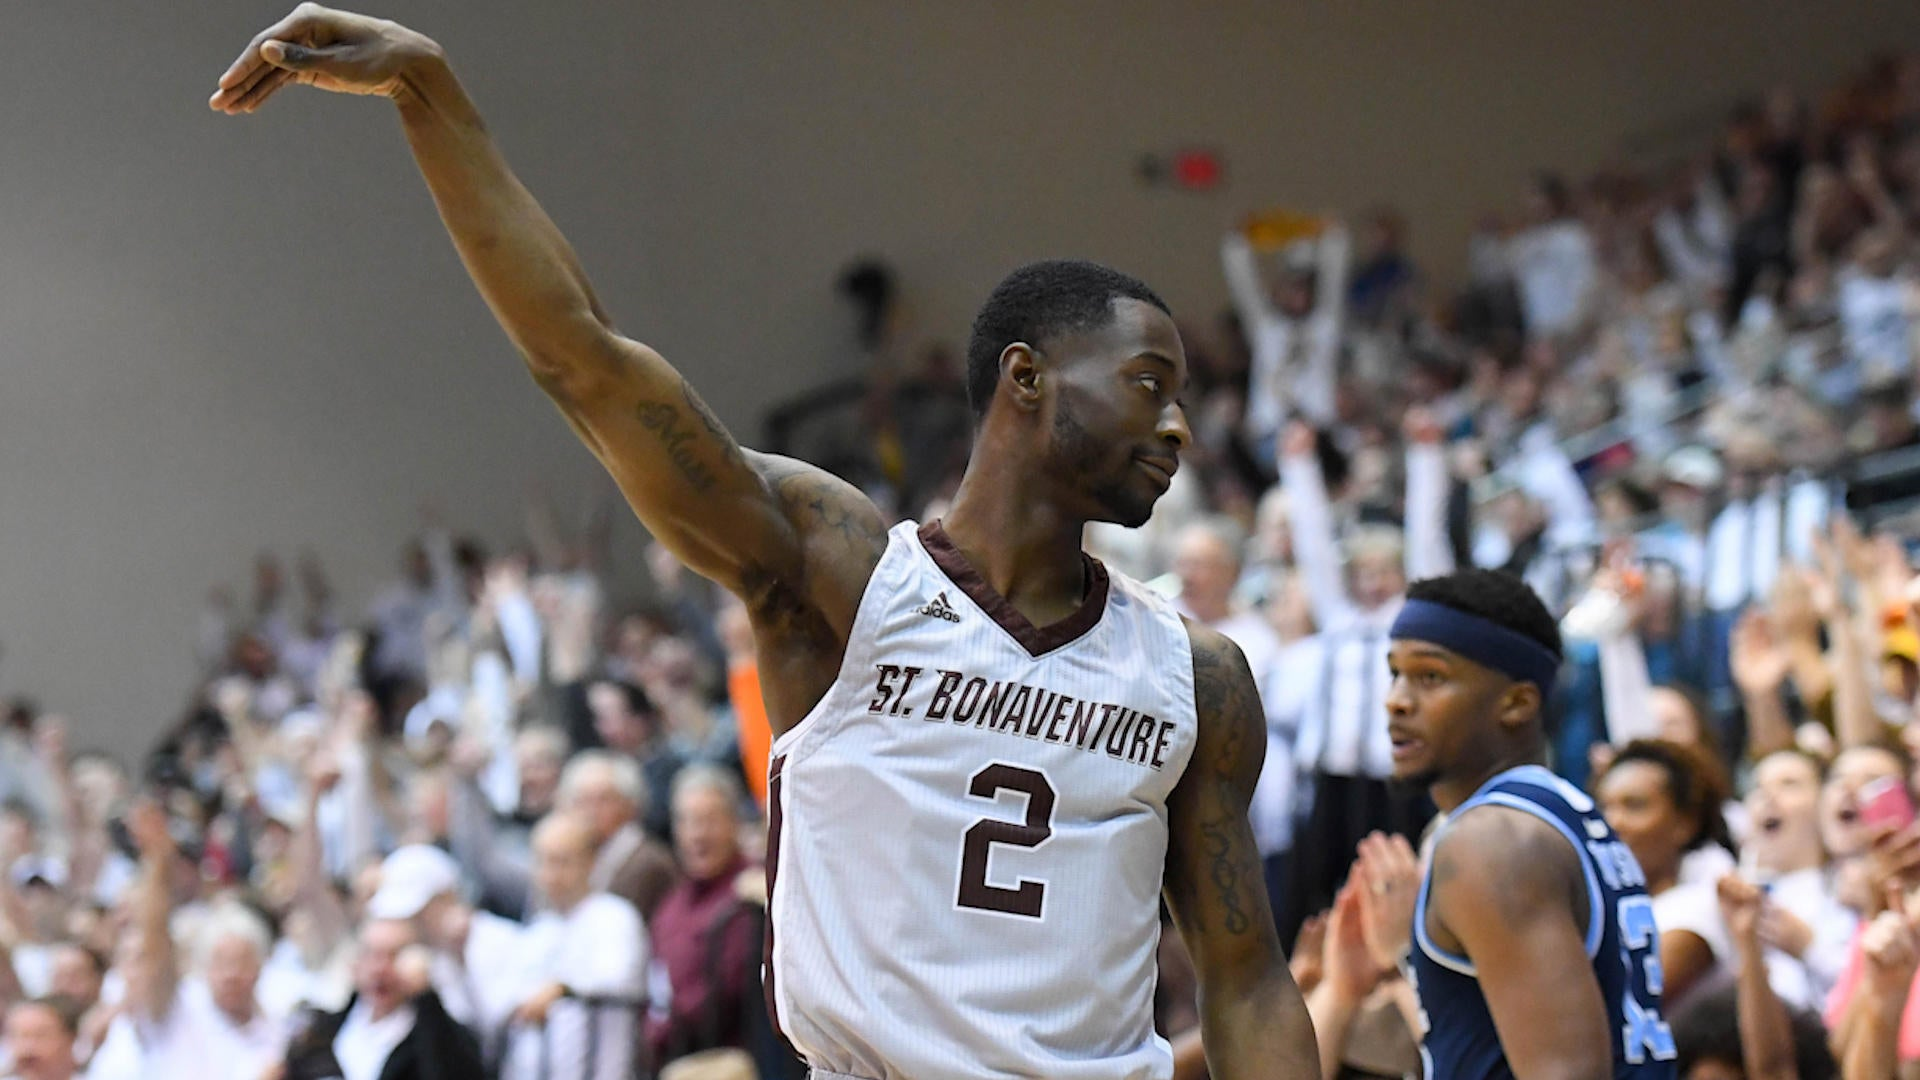 Did St. Bonaventure's Win Over Rhode Island Put Them In Tournament Contention?